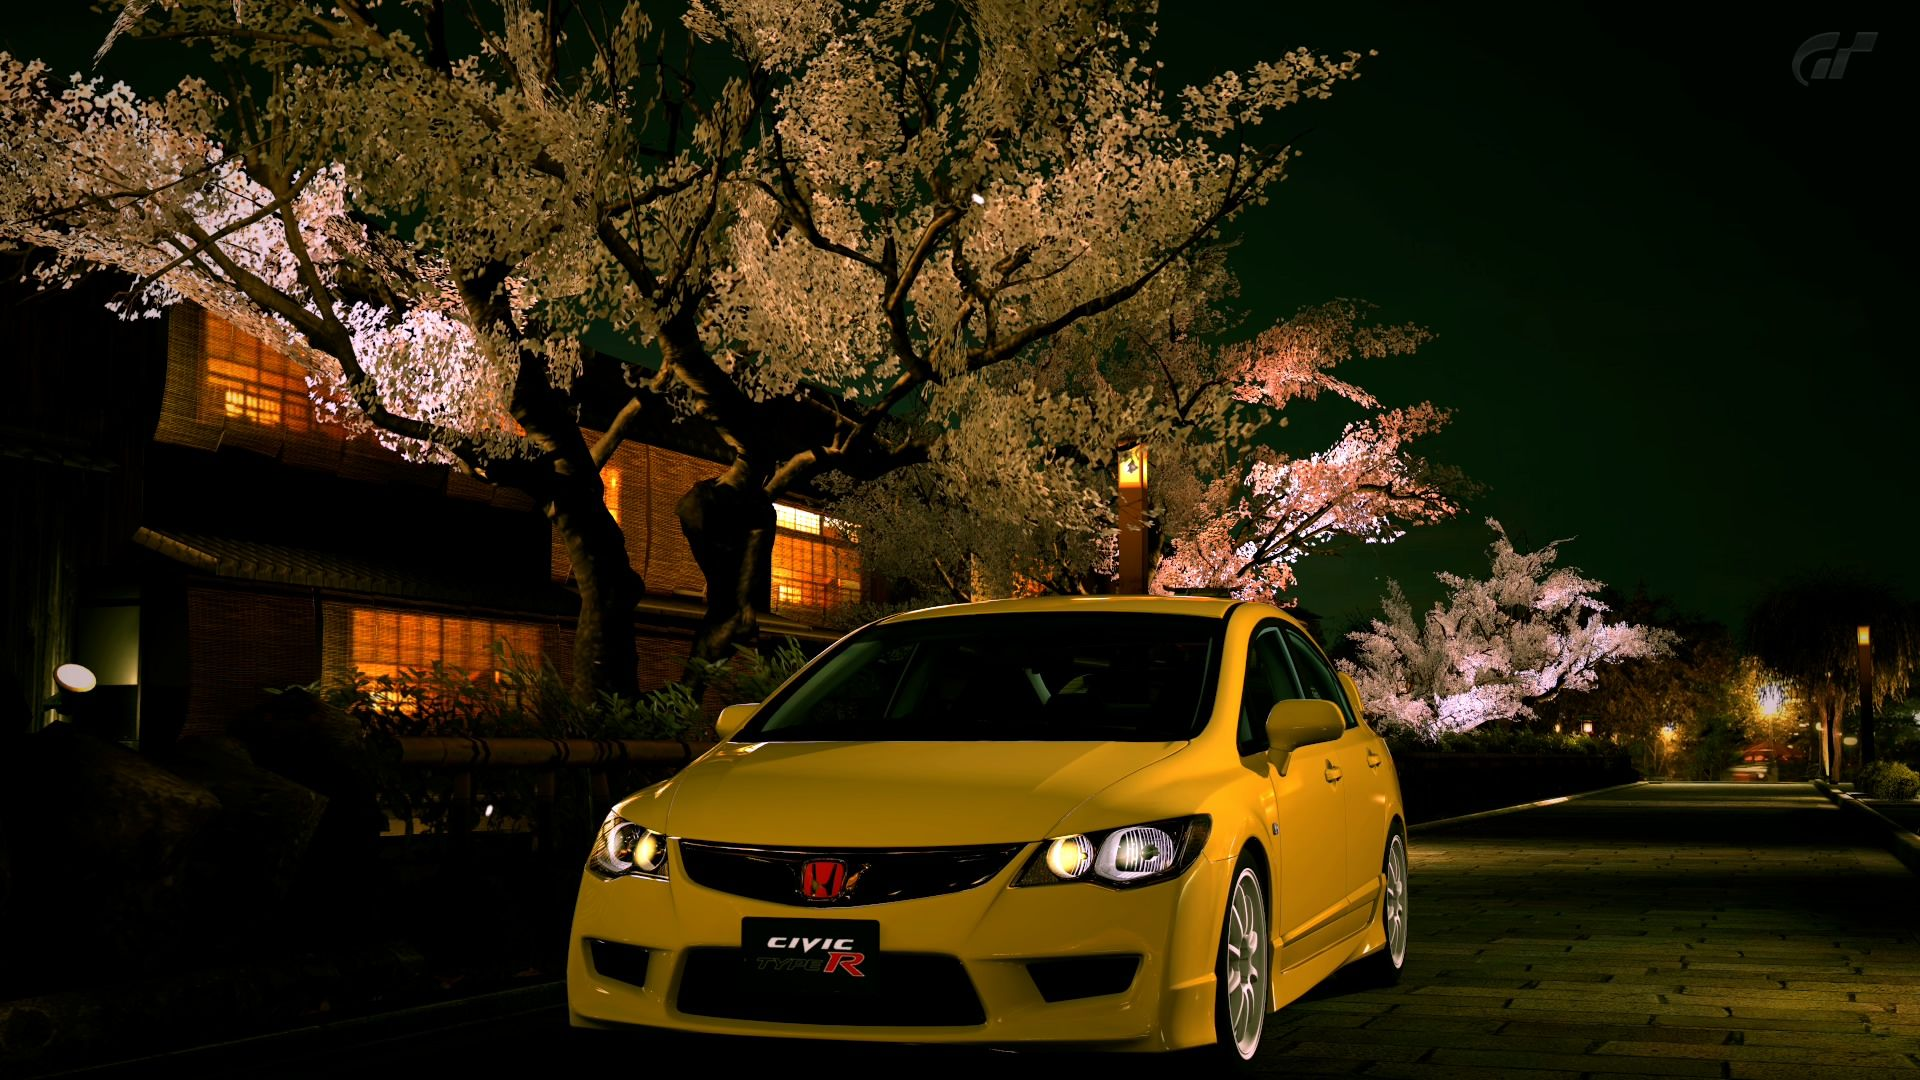 Each wallpaper is provided with the name, company, model of that car. 180 Car Wallpaper Ideas In 2021 Car Wallpapers Car Cool Wallpapers Cars